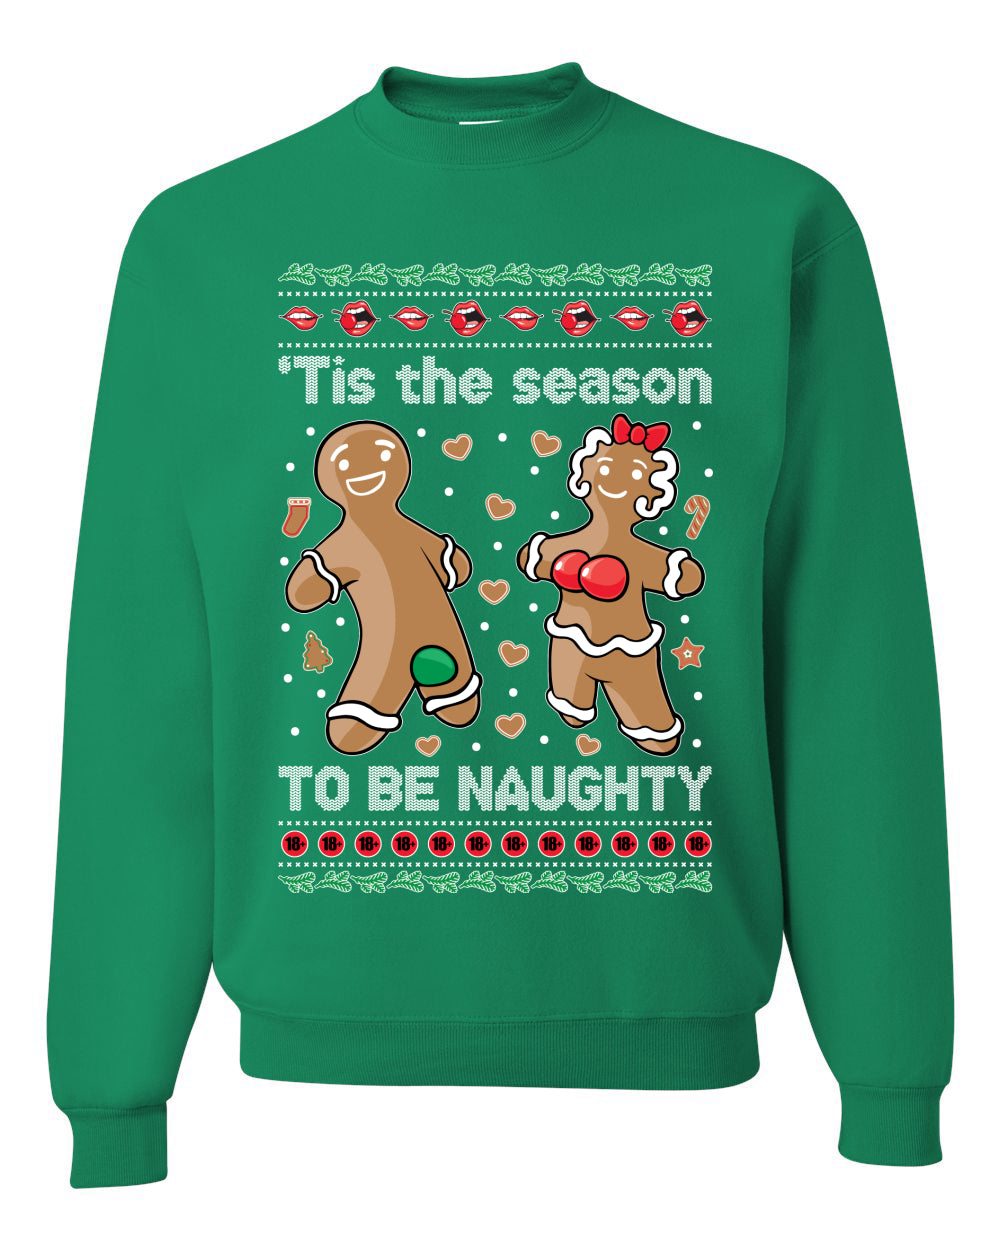 Tis Season to get Naughty Xmas Ugly Christmas Sweater Christmas Unisex Crewneck Graphic Sweatshirt